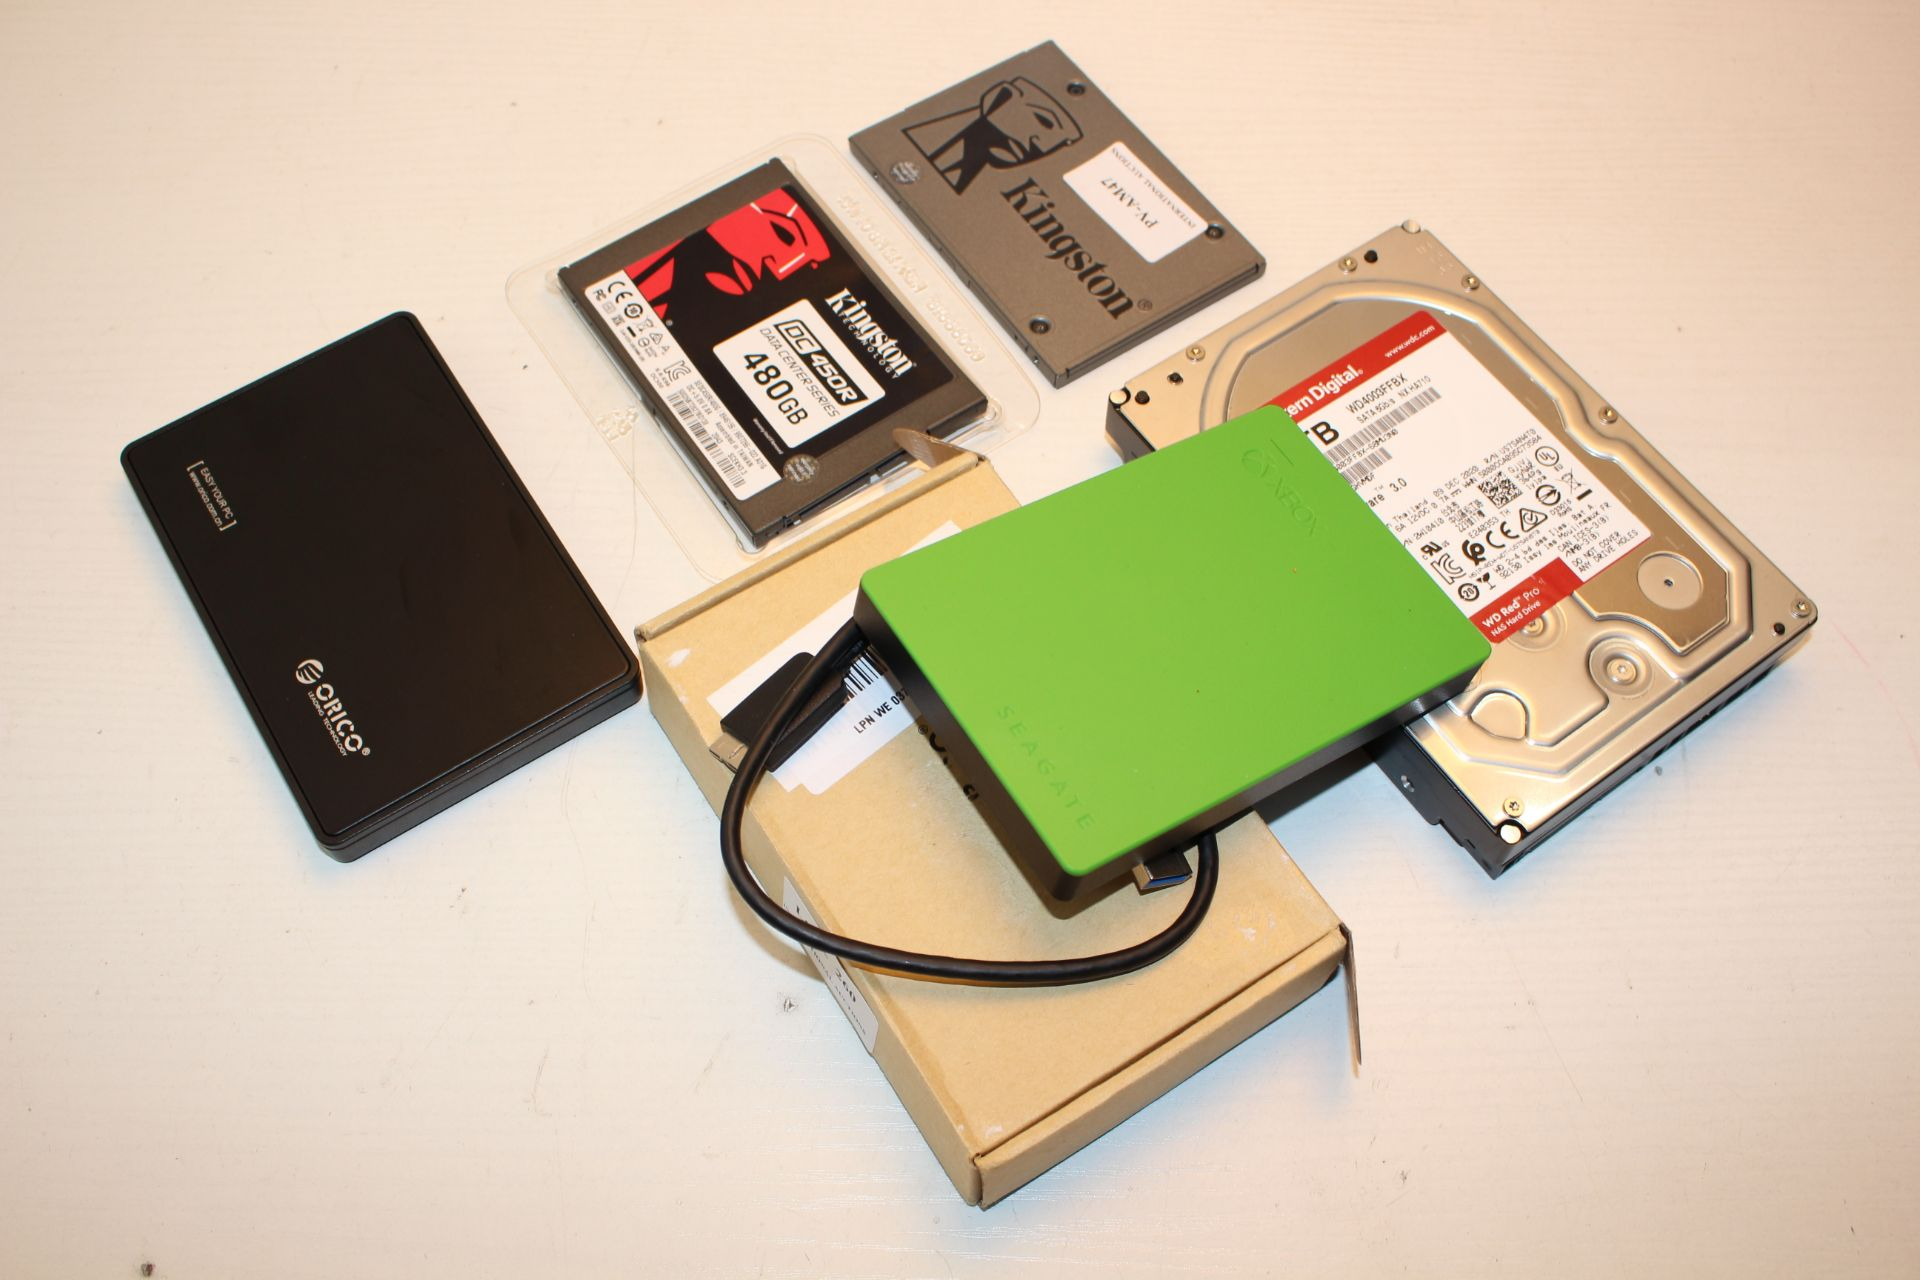 6X ASSORTED ITEMS TO INCLUDE SEAGATE, WESTERN DIGITAL & OTHER (IMAGE DEPICTS STOCK)Condition